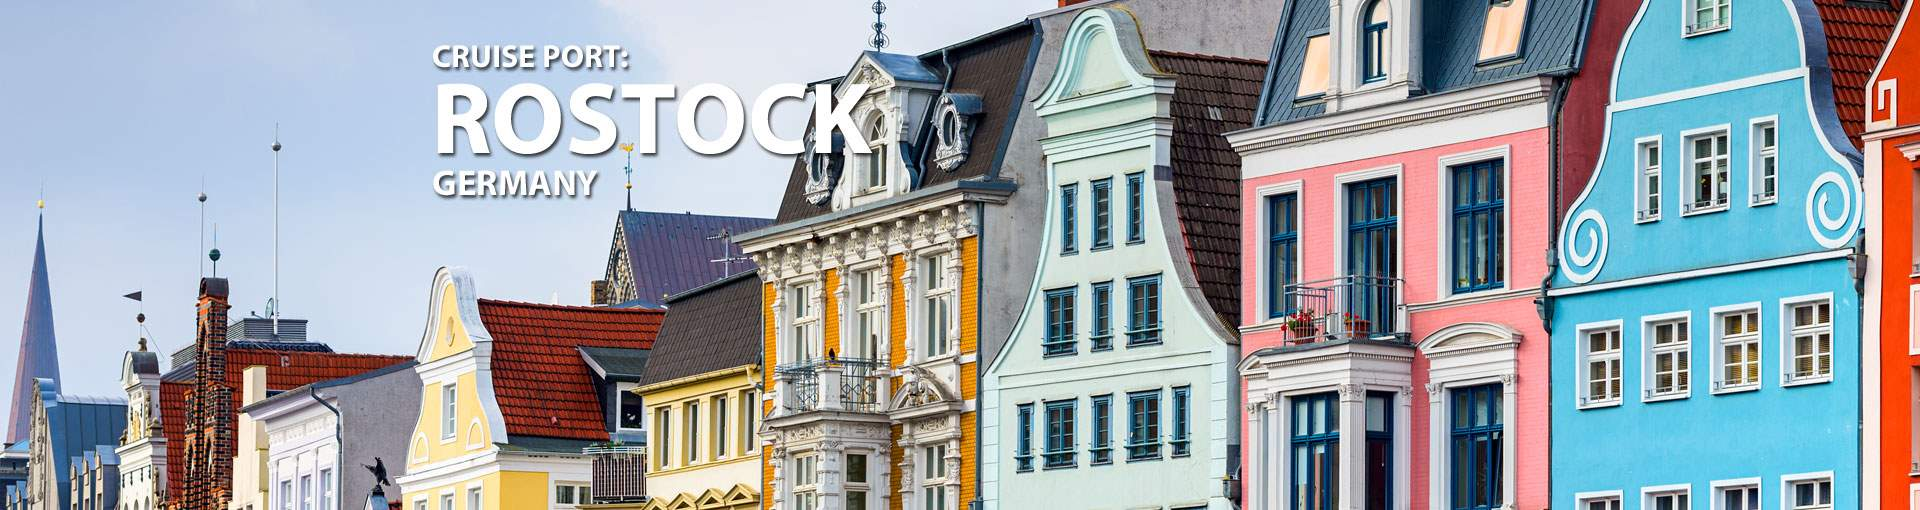 Cruises to Rostock (Berlin), Germany